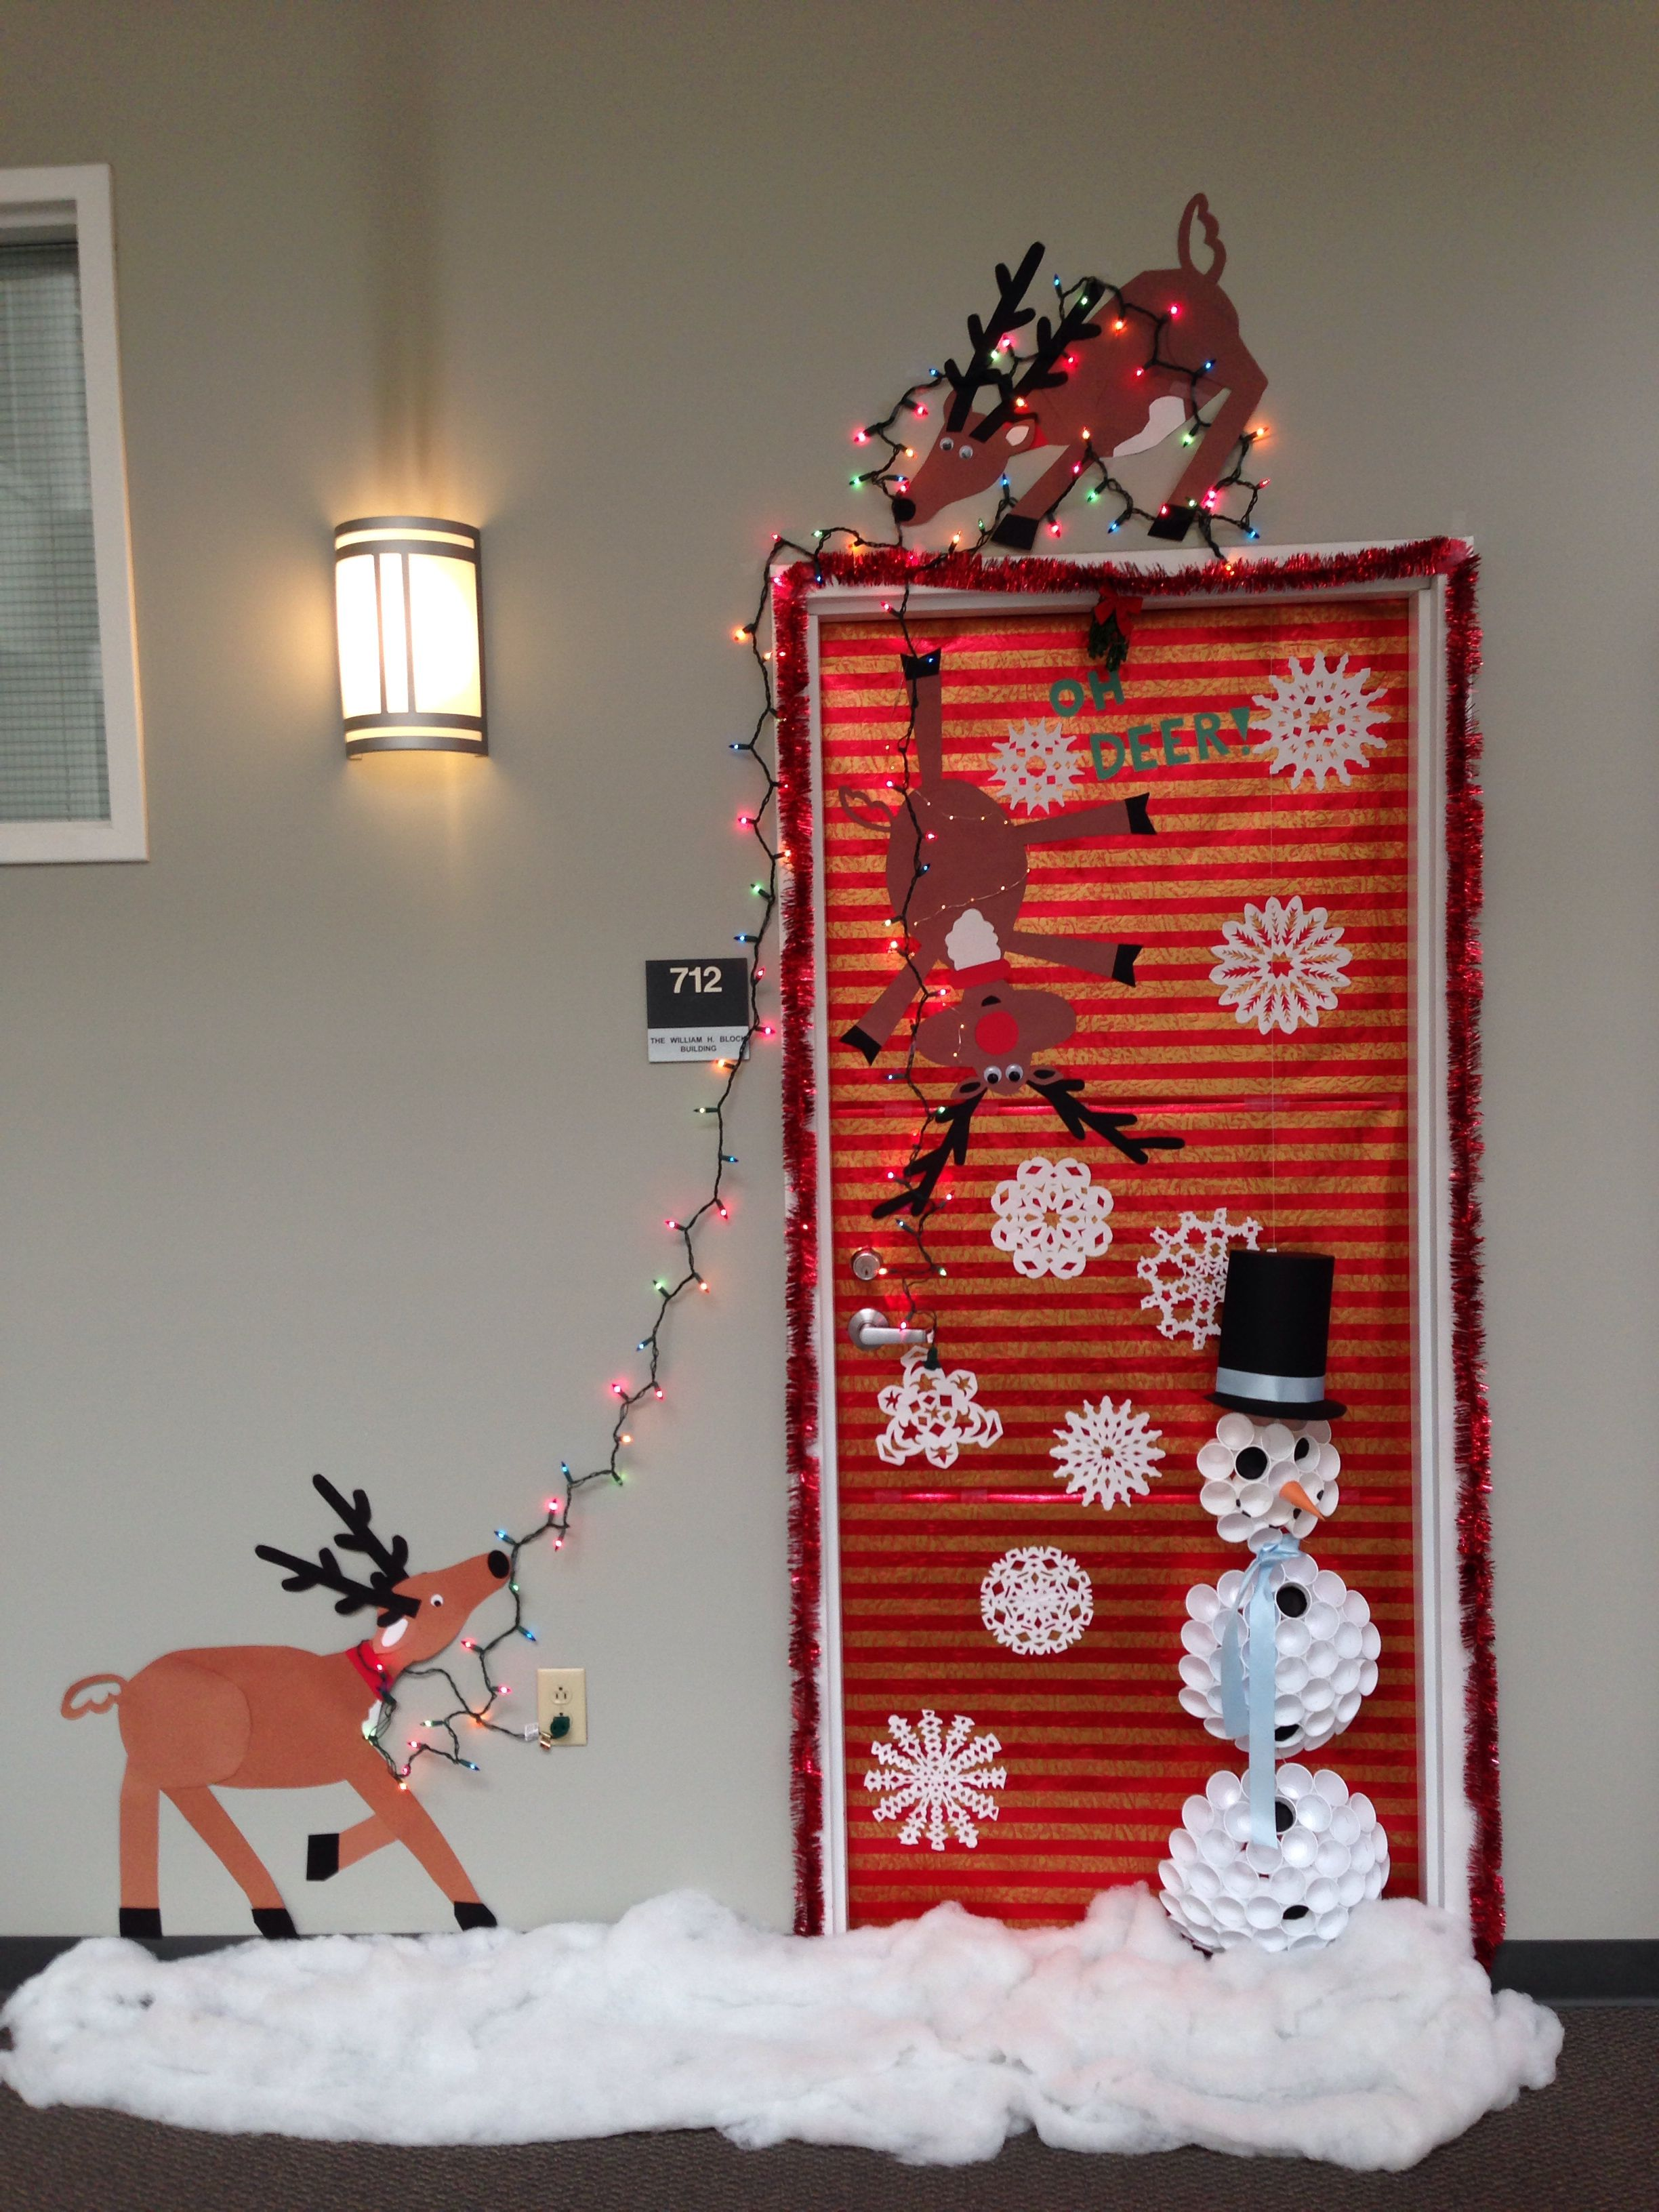 christmas door decorating ideas Our Christmas door decoration    FIRST PLACE!! Made snowman with  christmas door decorating ideas